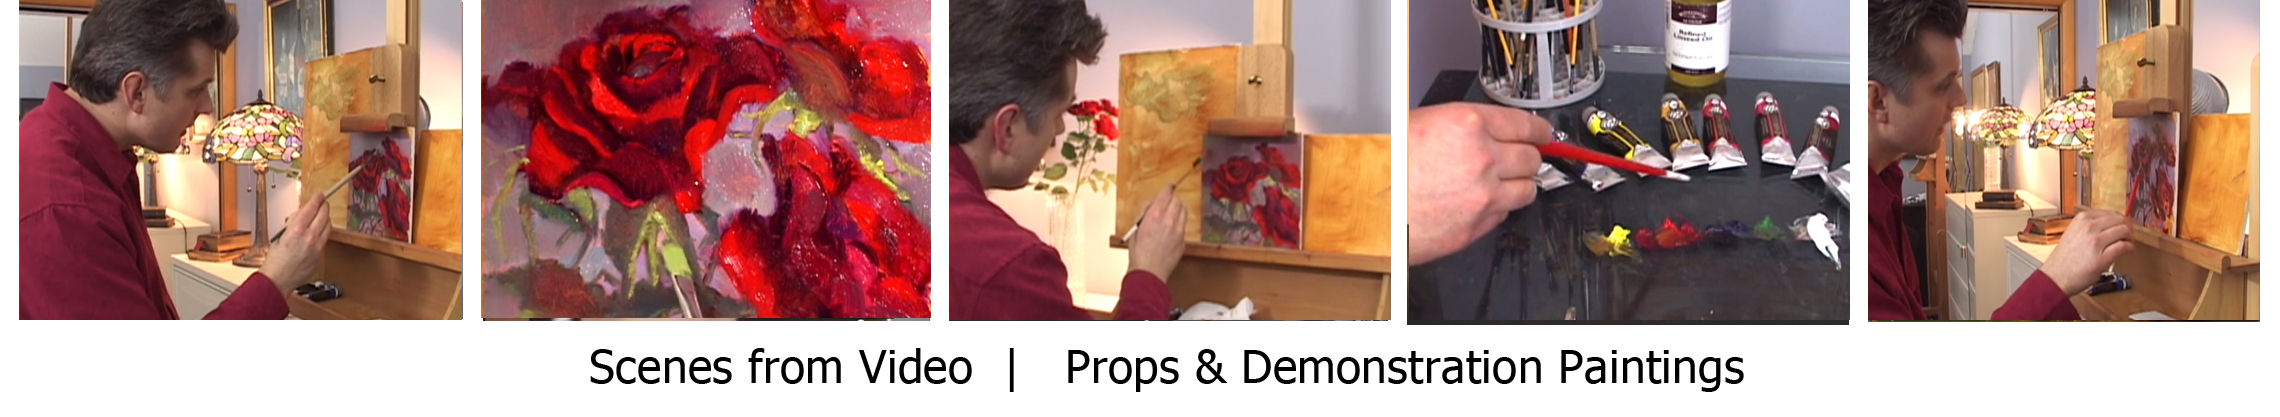 Roses Painting Video